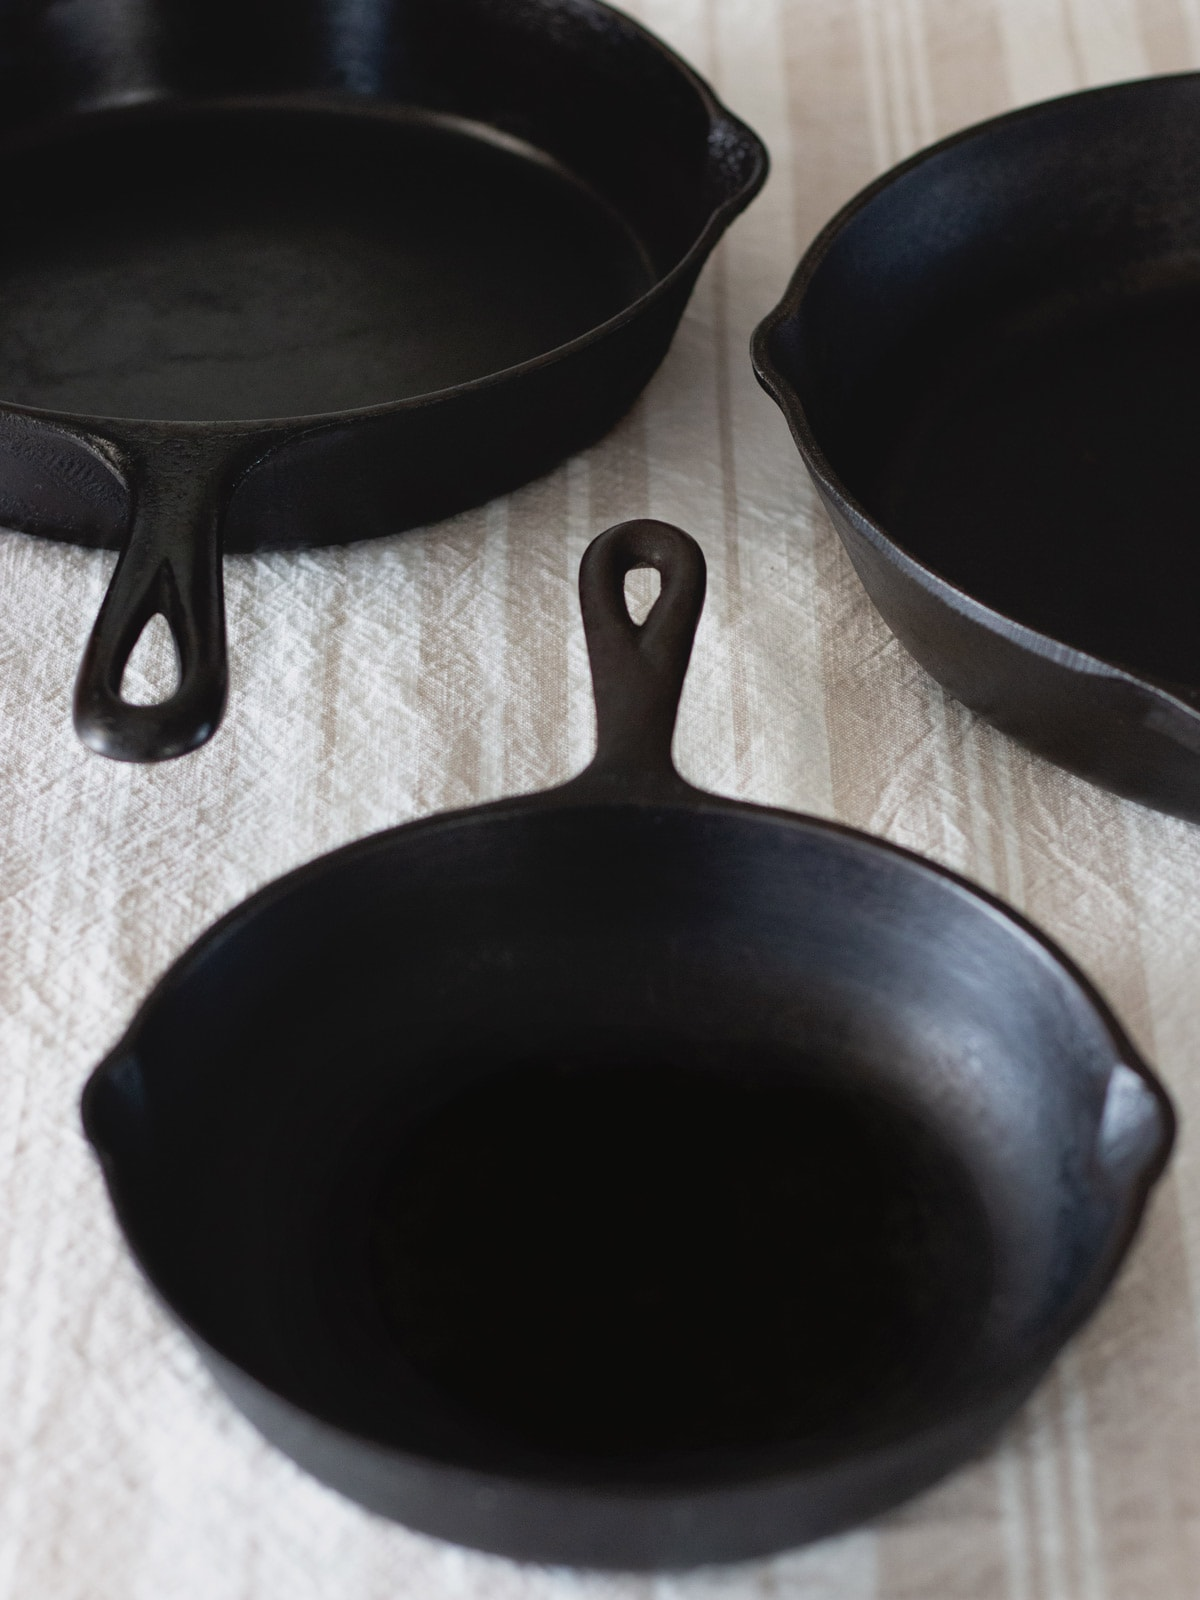 How to Care for Cast Iron Skillets or Pots